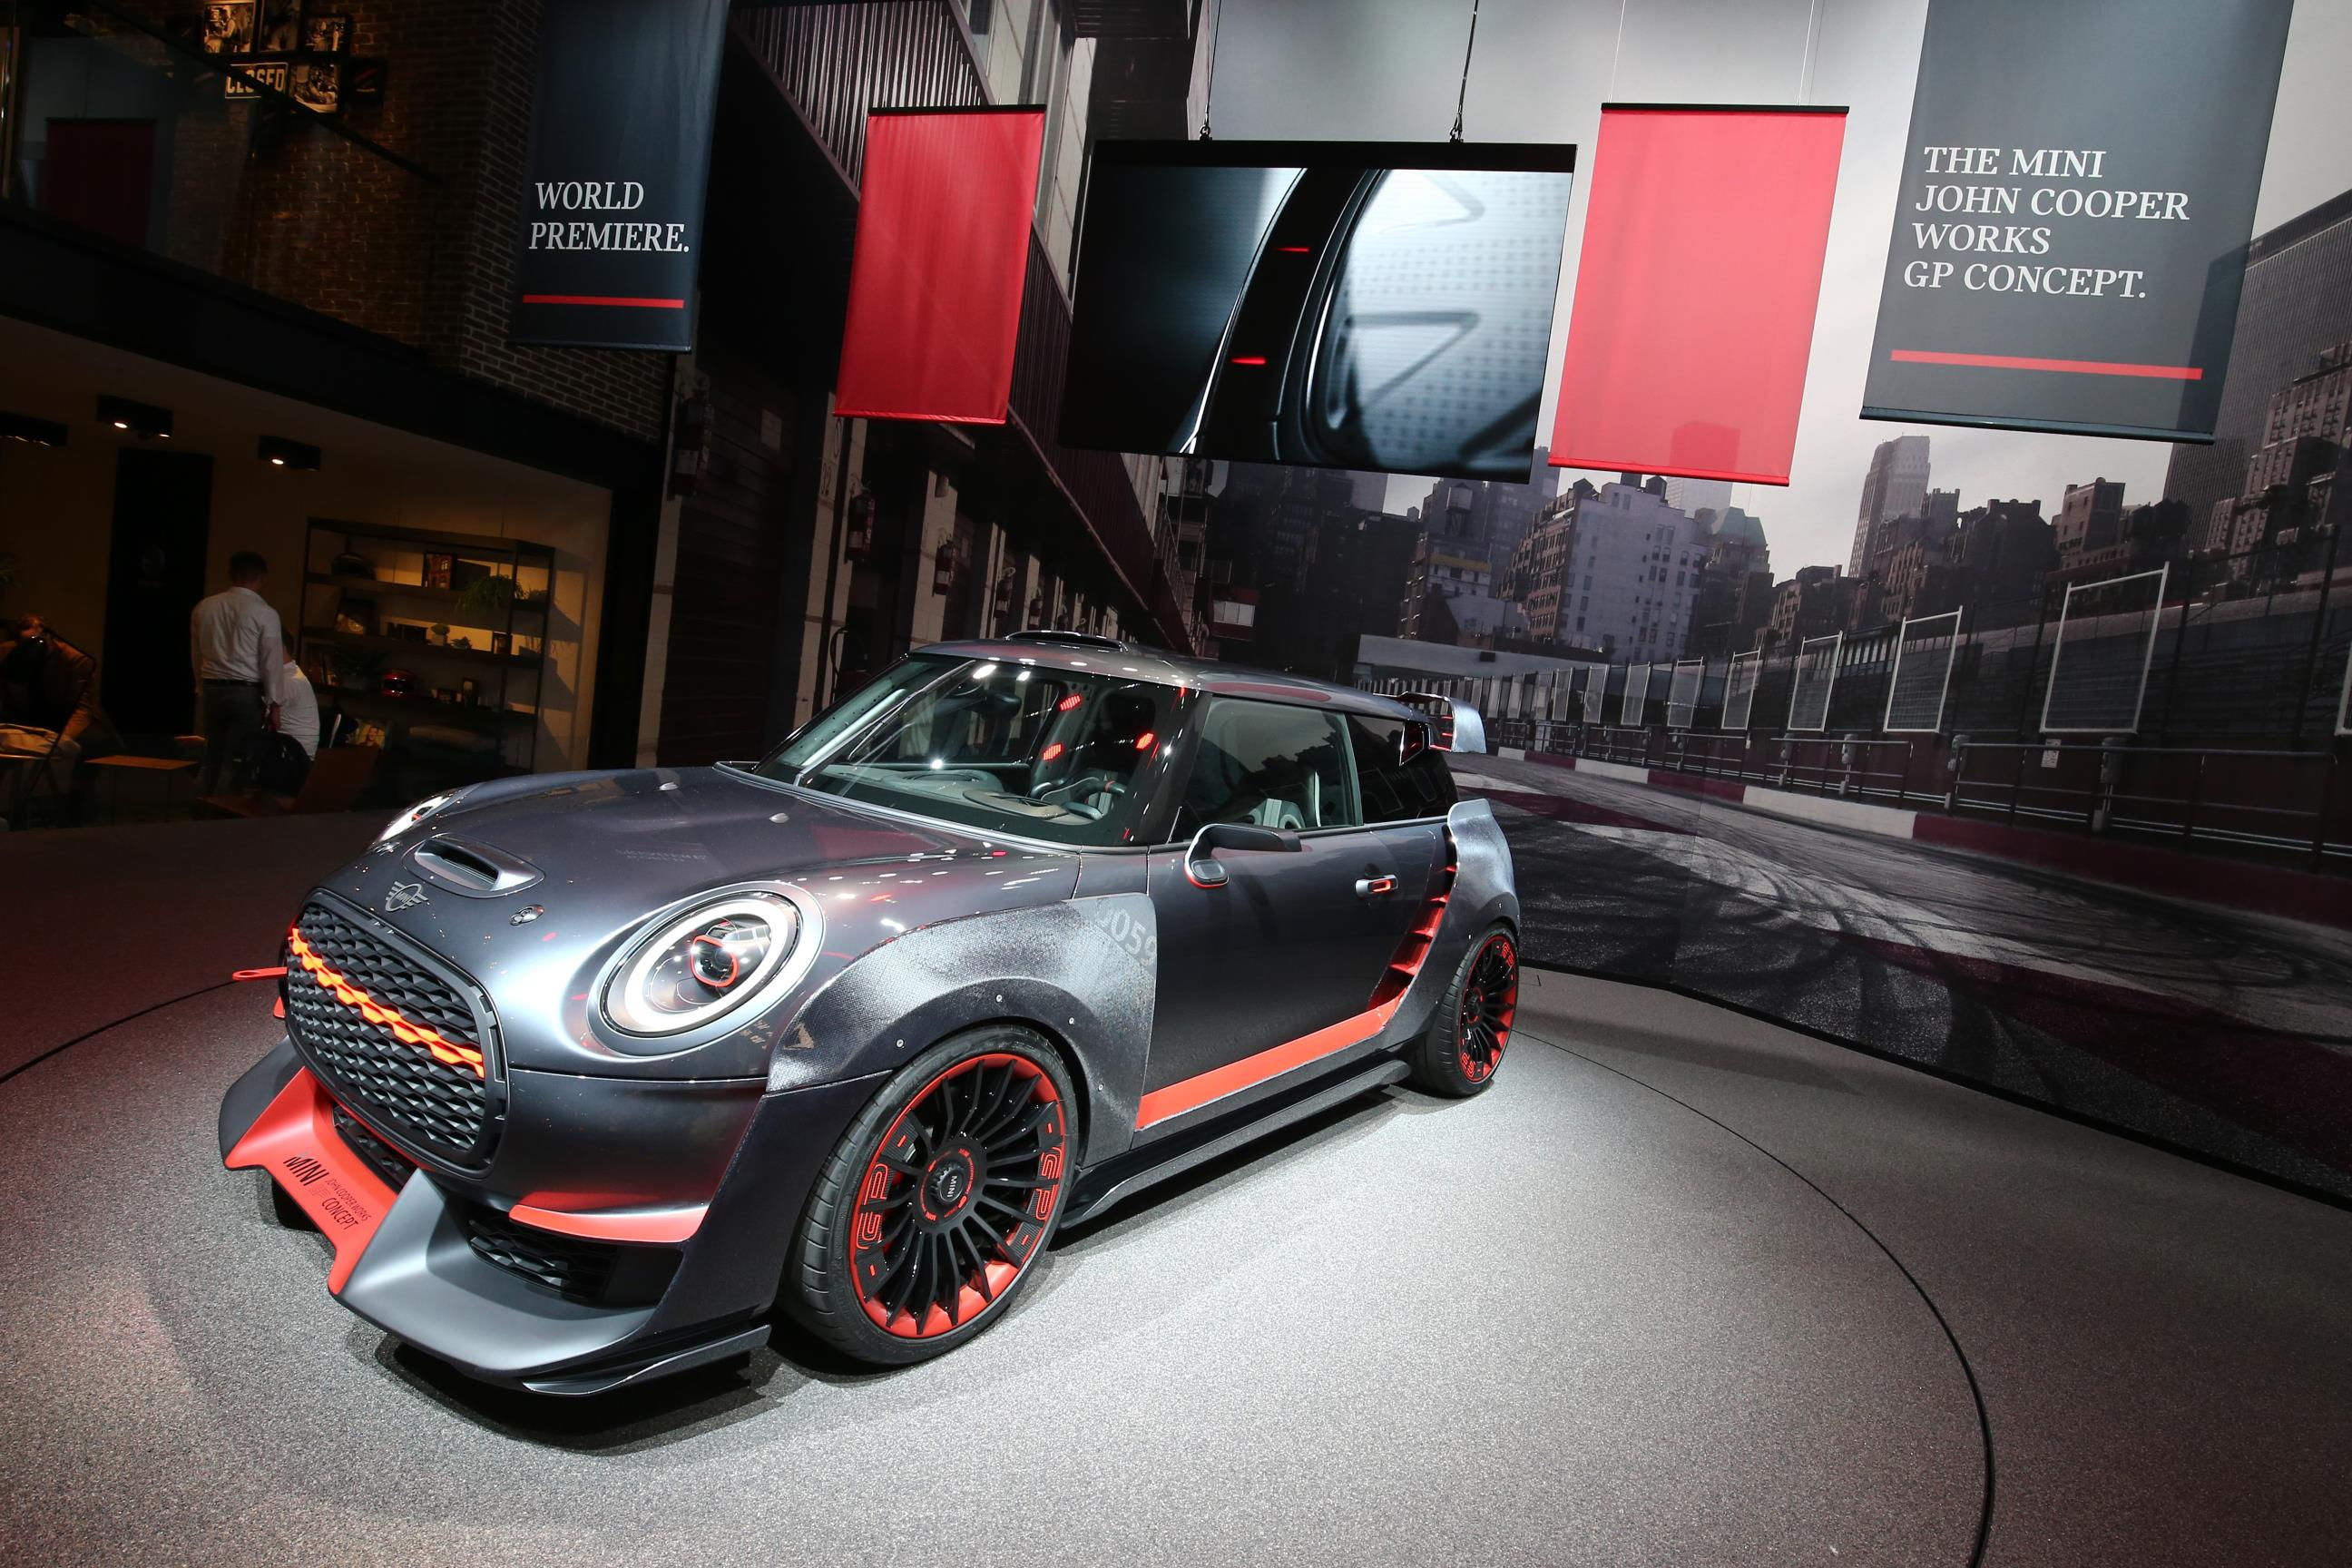 71 New 2020 Mini Cooper Clubman Performance